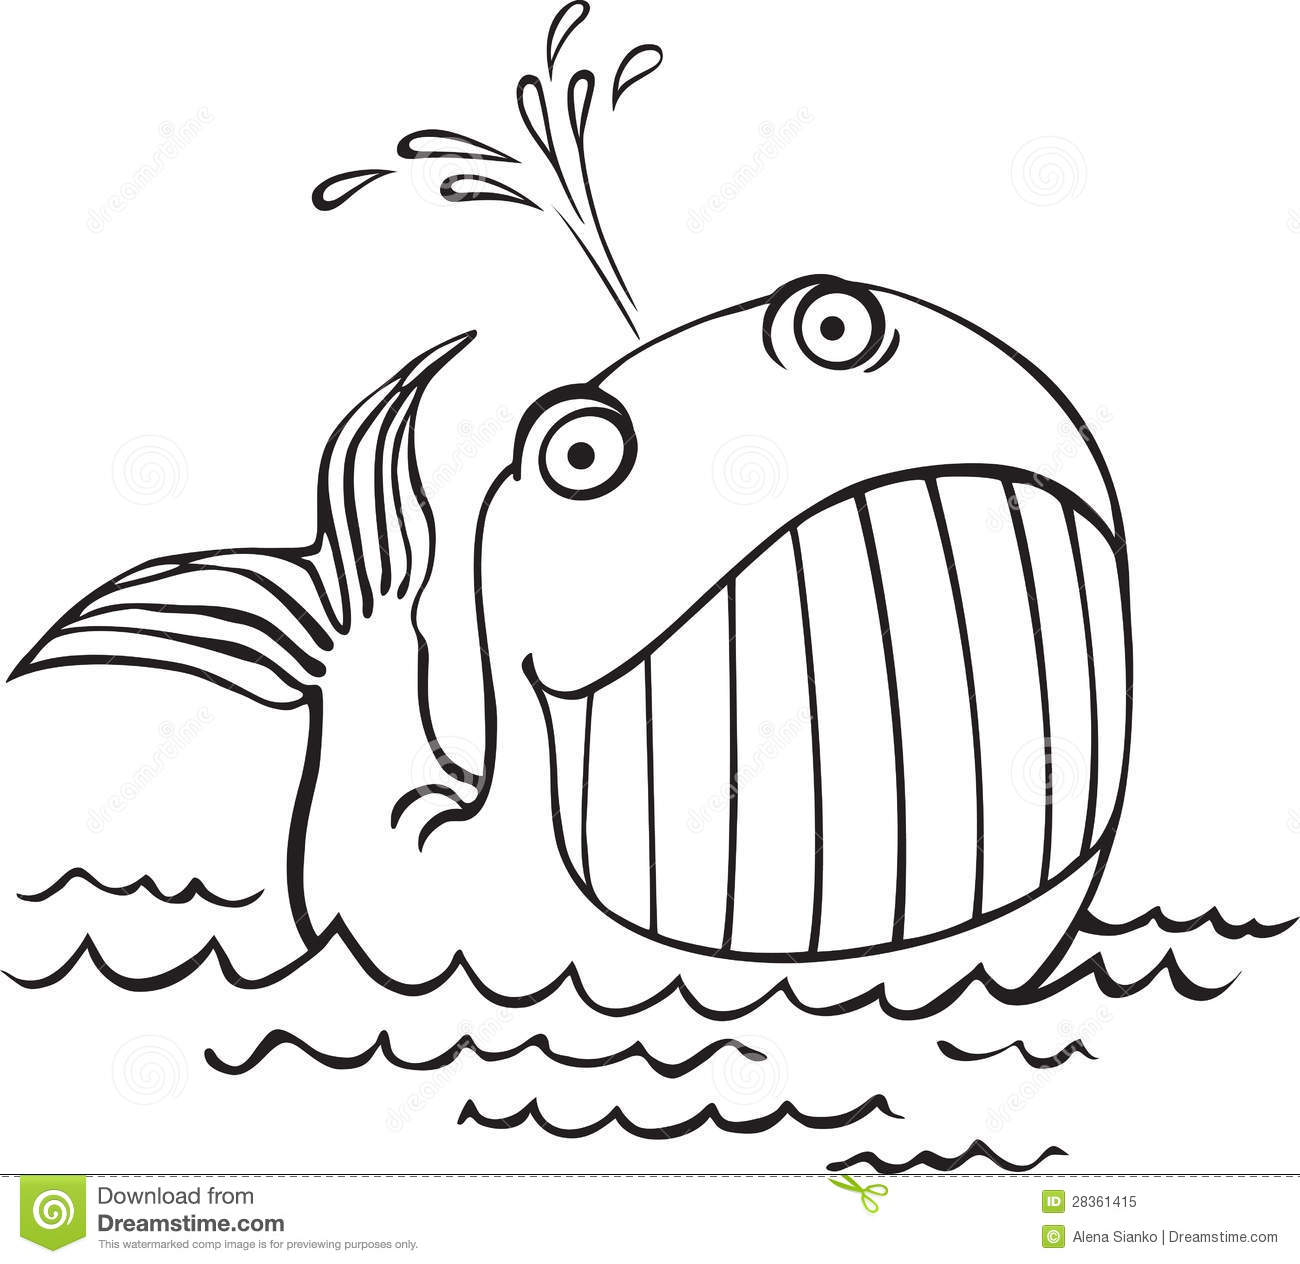 Line Drawing Of Water Animals : Outline drawing of a whale cartoon sea animals stock